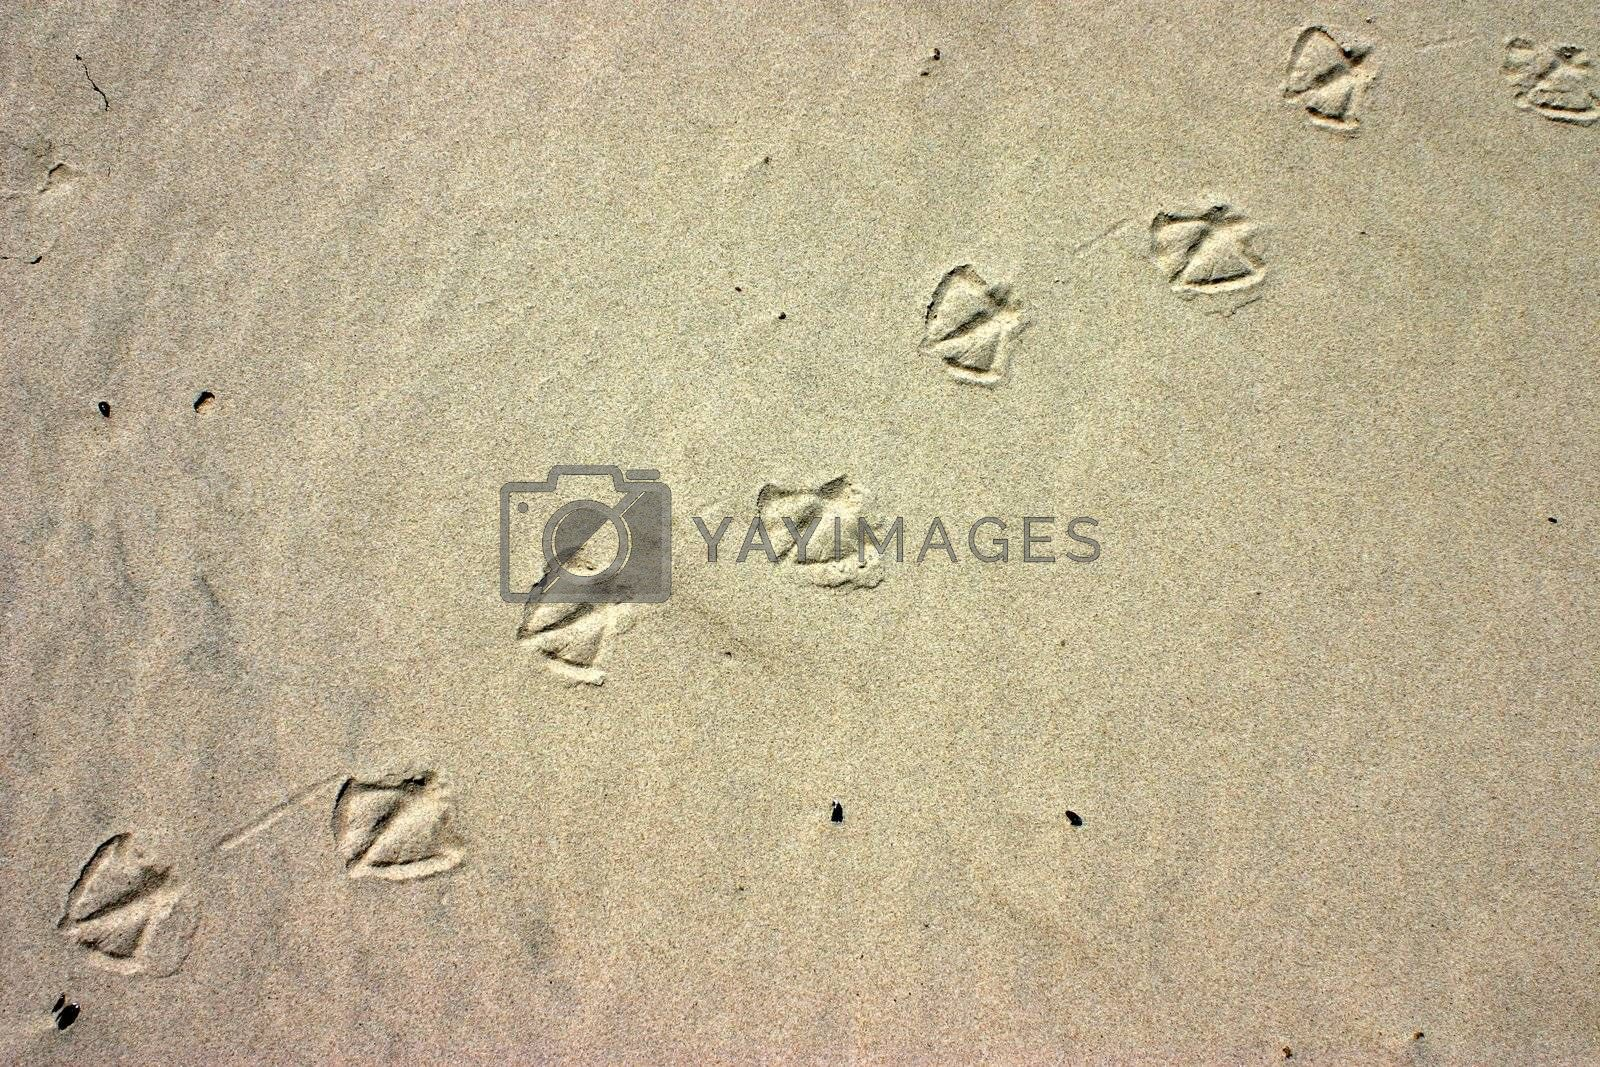 Deliberately high contrast on the sand with bird paw prints, natural background